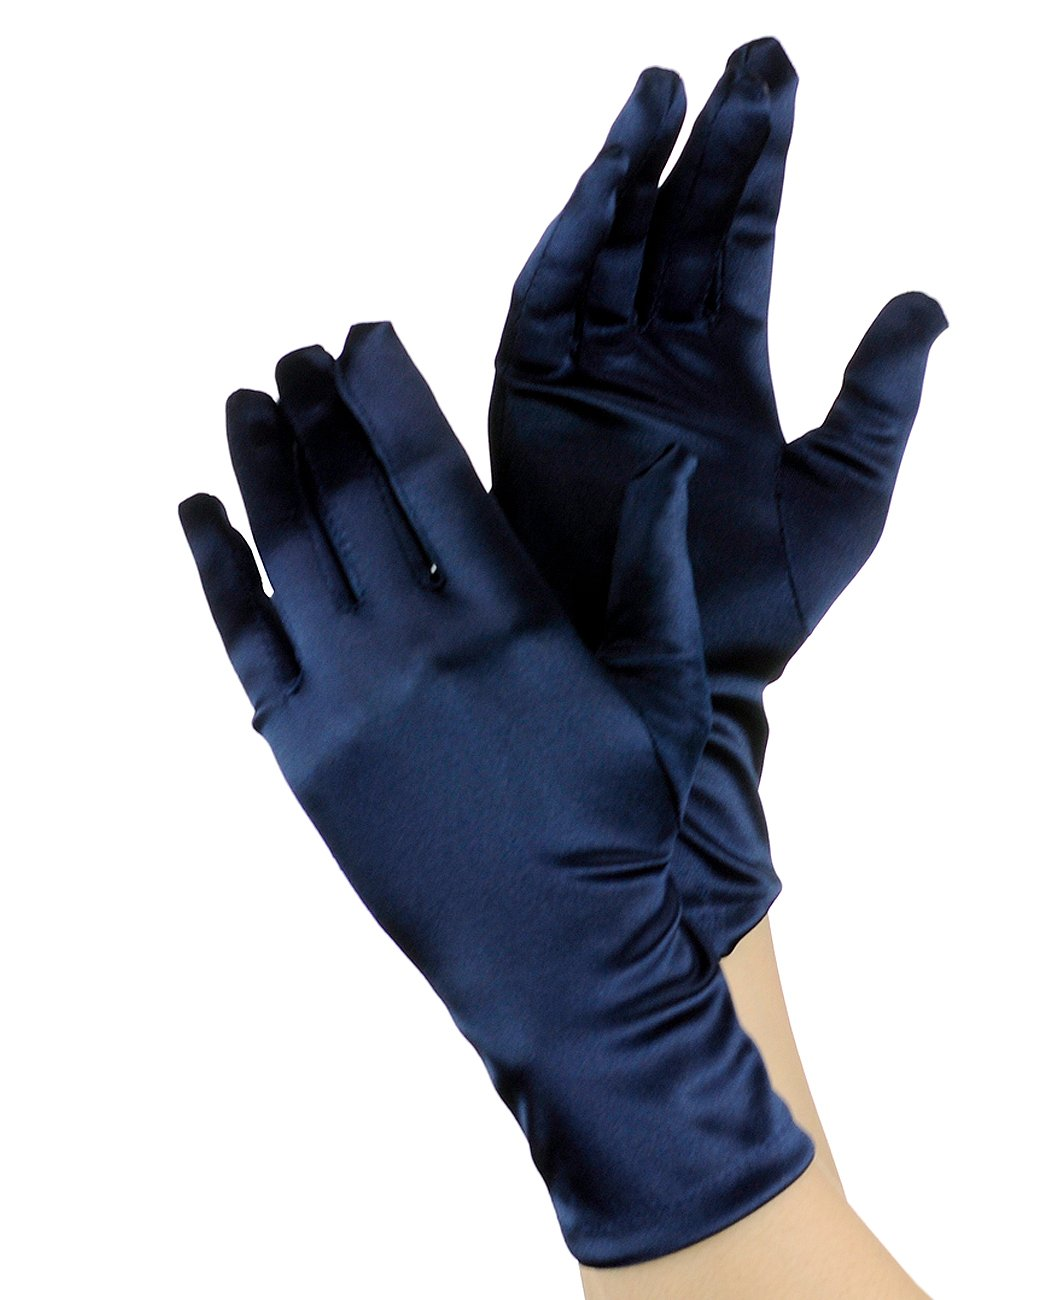 NYFASHION101 Solid Color Classy Elegant Formal Wrist Length Satin Gloves, Jet Black CECI GLV24-BK